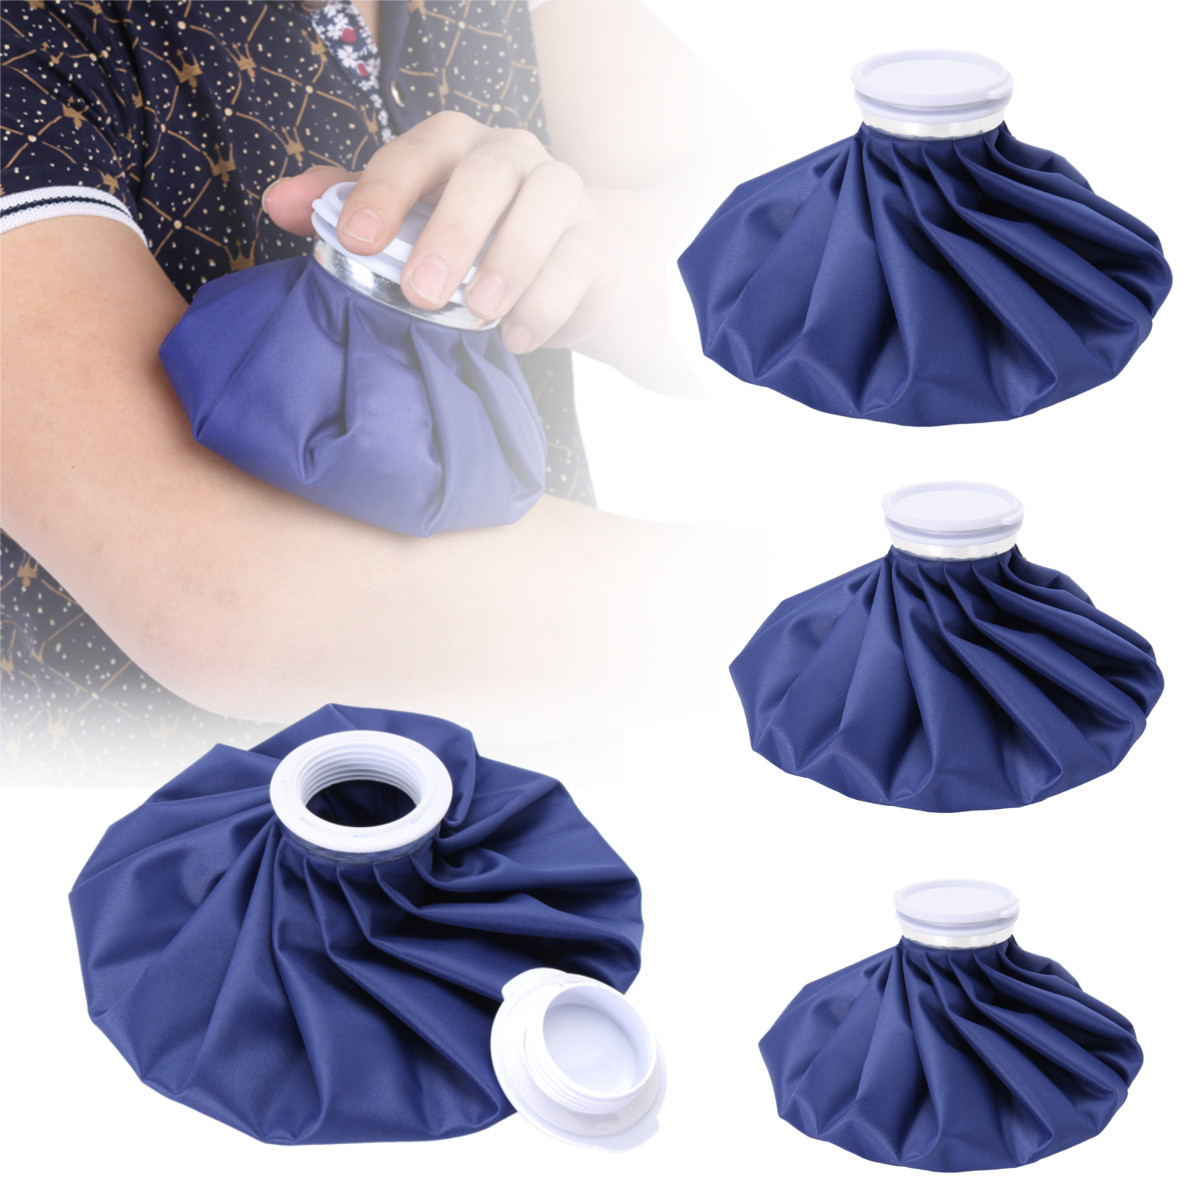 3 Size Sport Injury Ice Bag Cap Reusable Health Care Cold Therapy Pack Cool Pack Muscle Aches First Aid Relief Pain Massage Tool